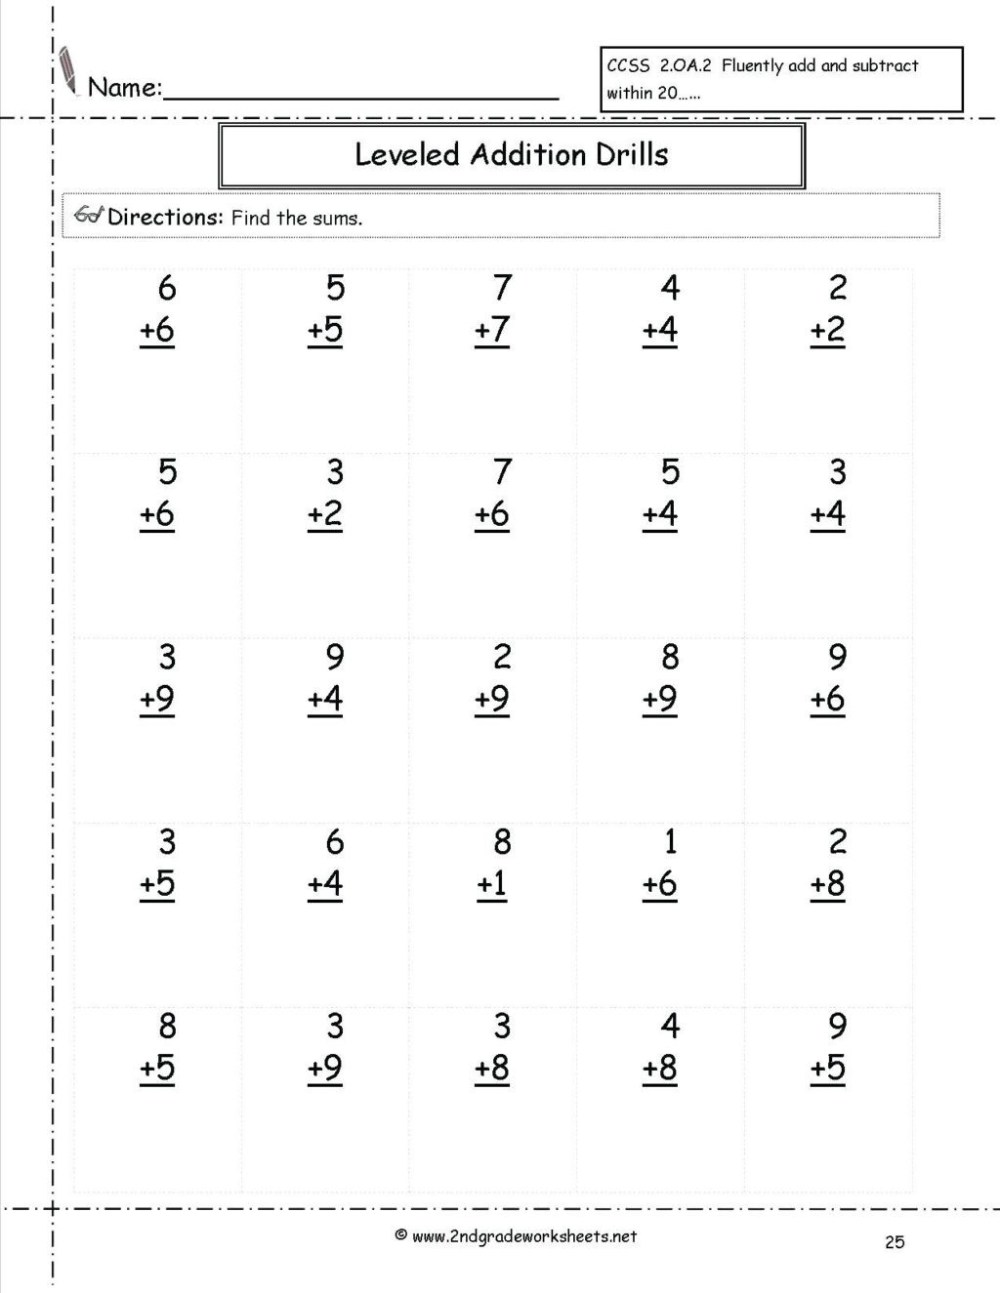 medium resolution of Multiplication Array Worksheets 3rd Grade   Printable Worksheets and  Activities for Teachers